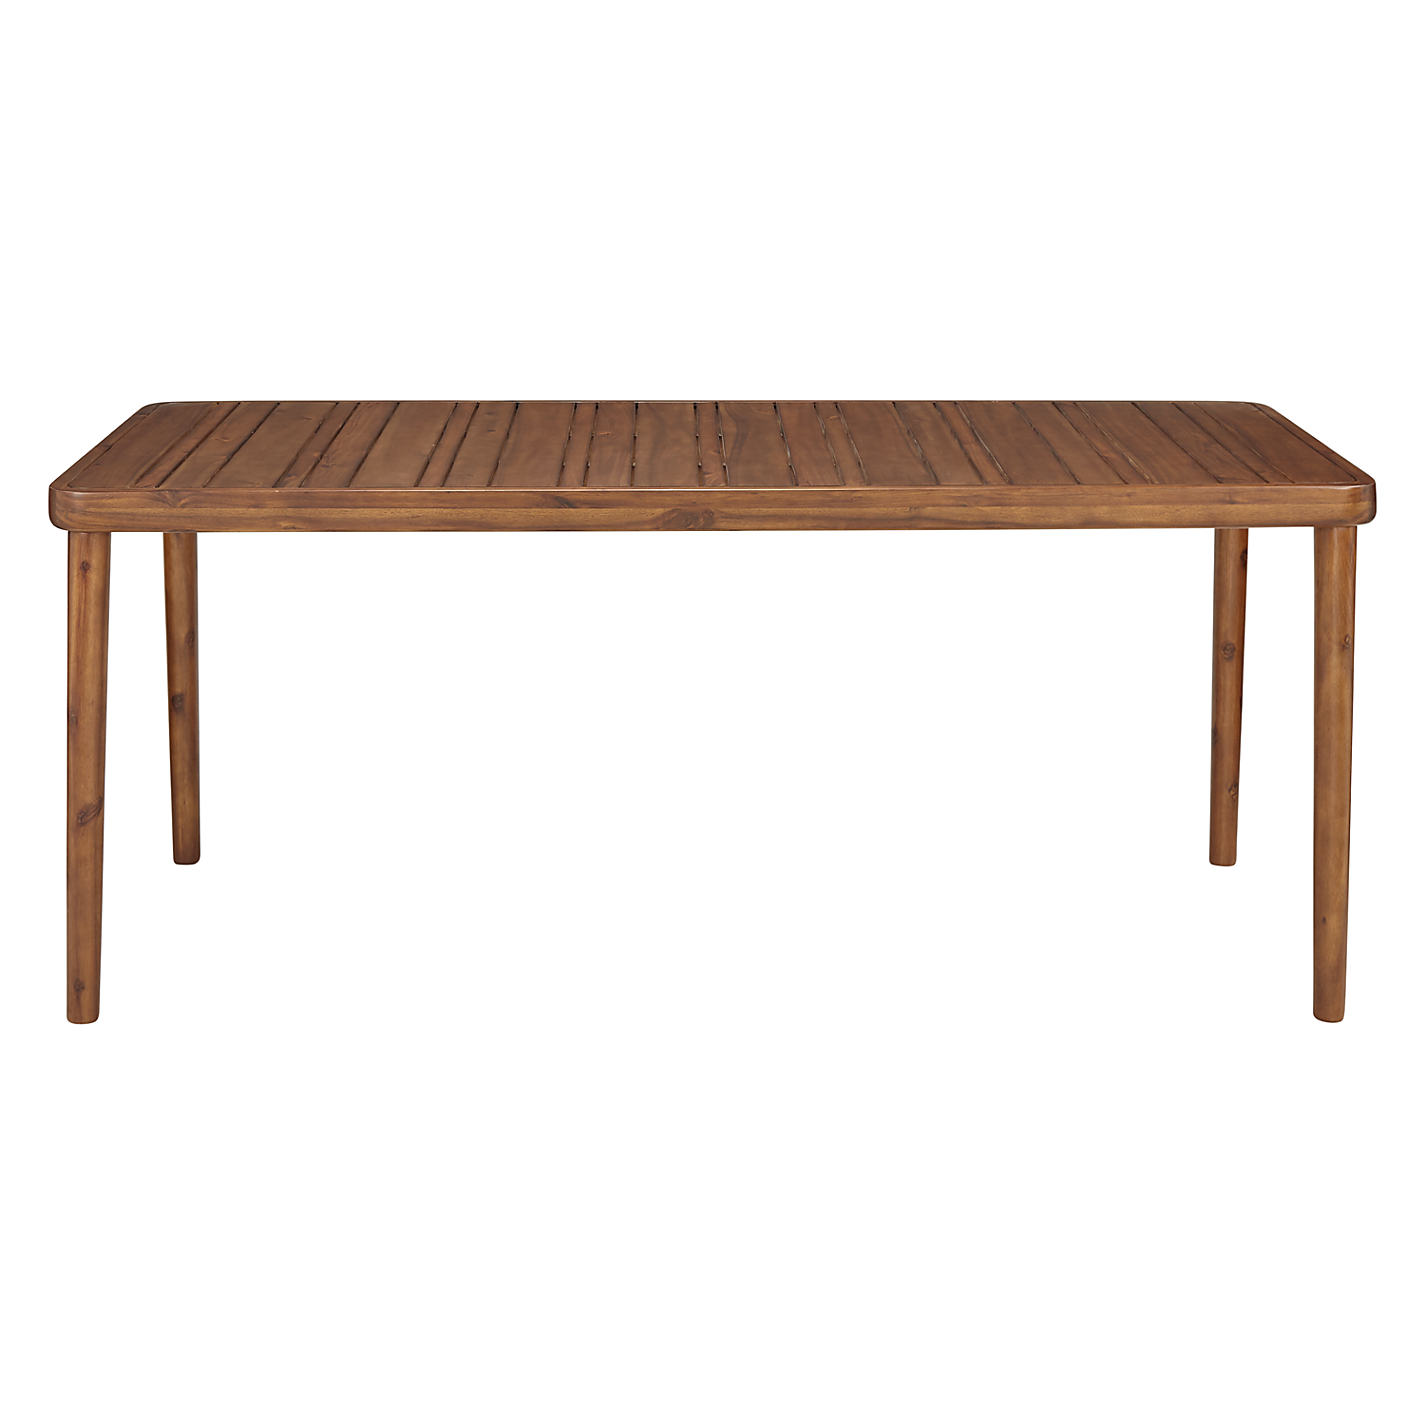 Folding side table john lewis - Buy Design Project By John Lewis No 096 Dining Table Fsc Certified